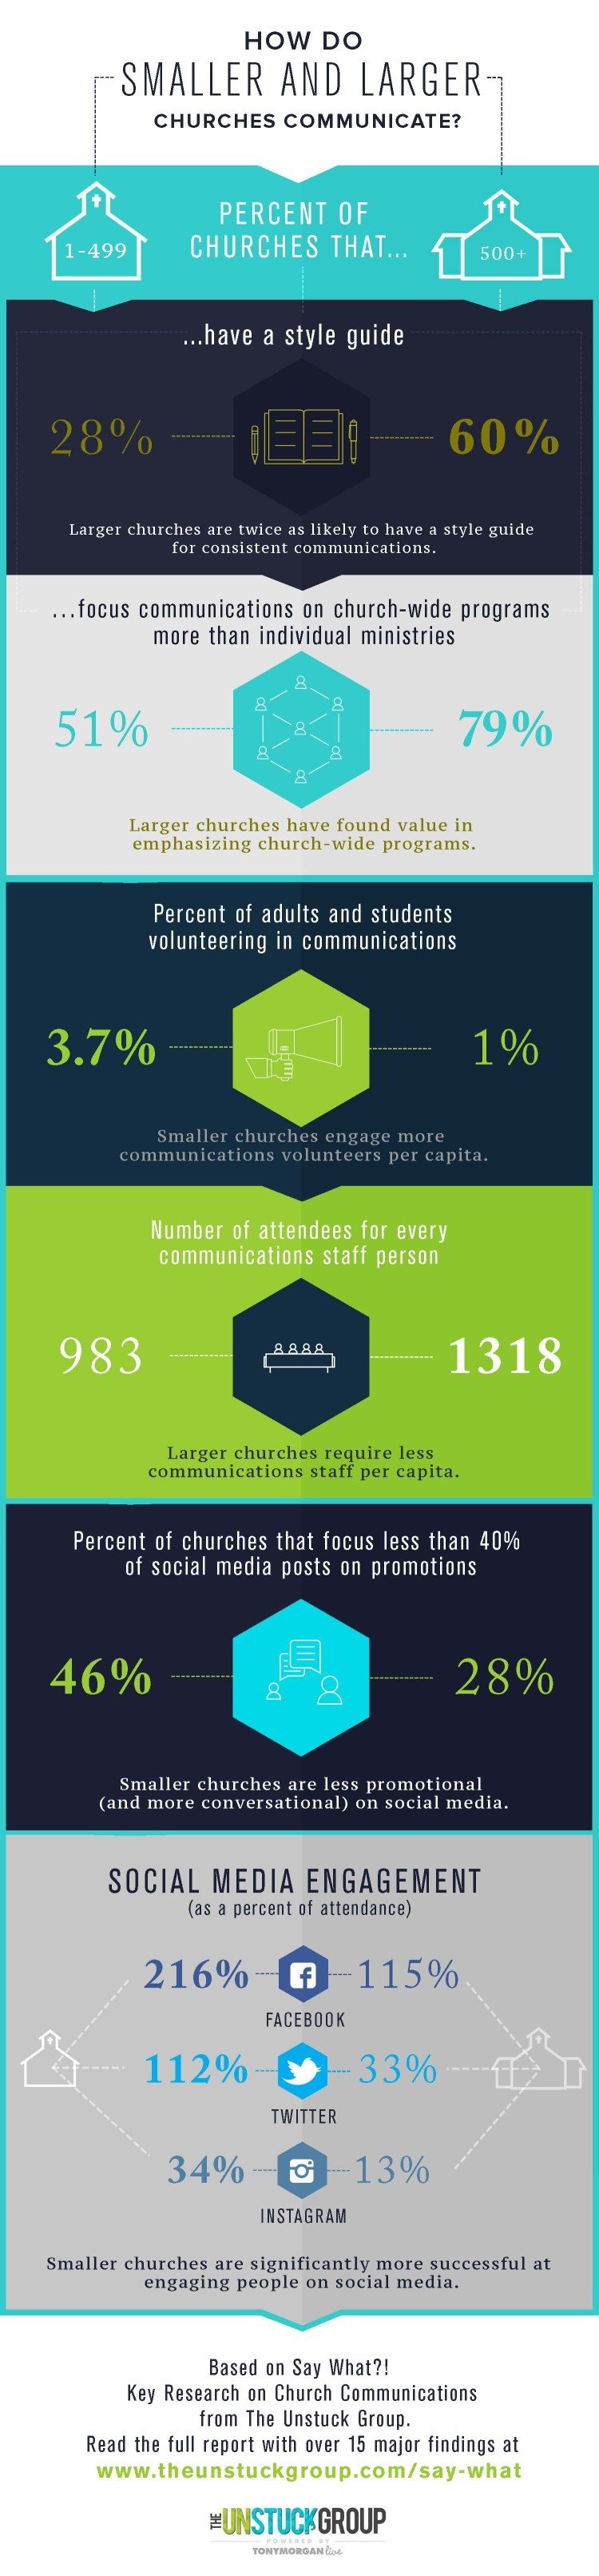 KEY DIFFERENCES BETWEEN HOW LARGER AND SMALLER CHURCHES COMMUNICATE